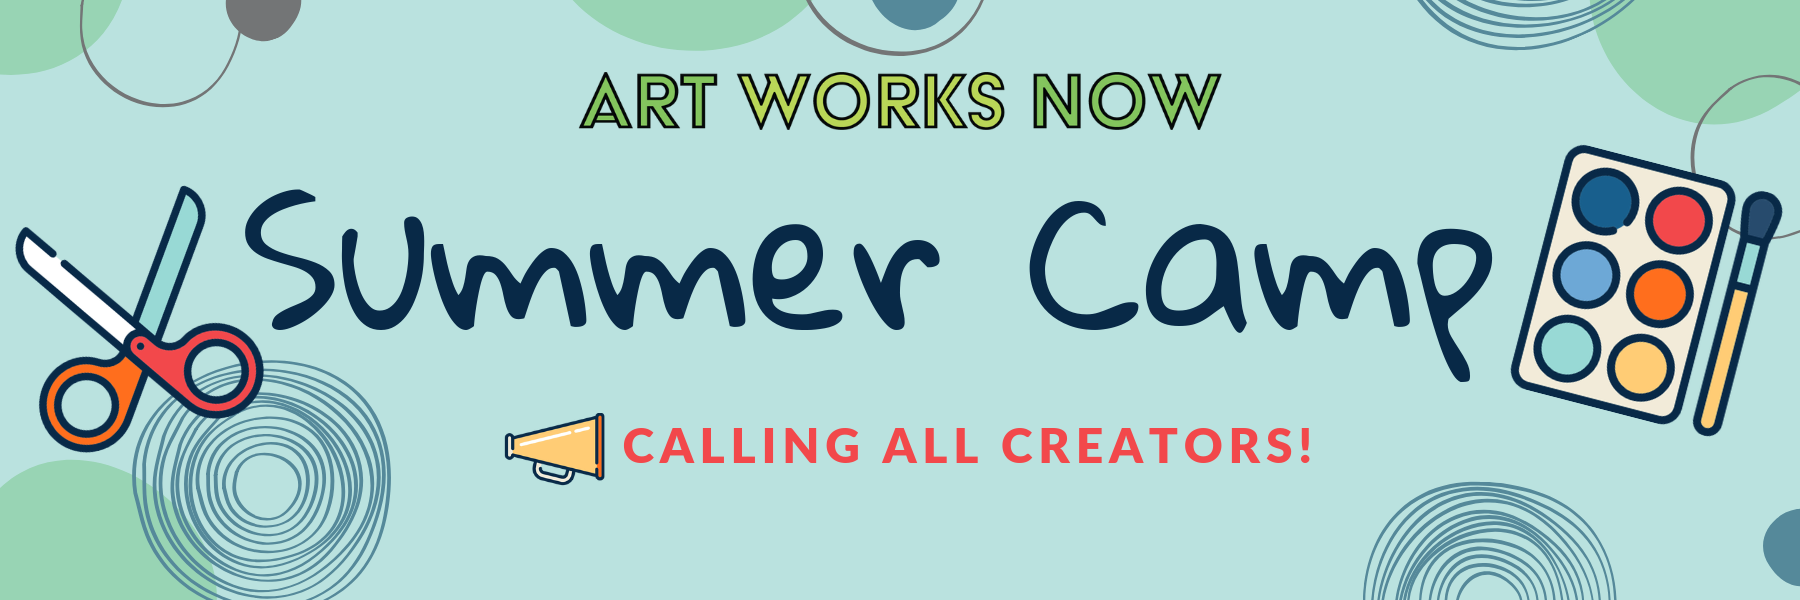 Summer Camp 2019 — Art Works Now